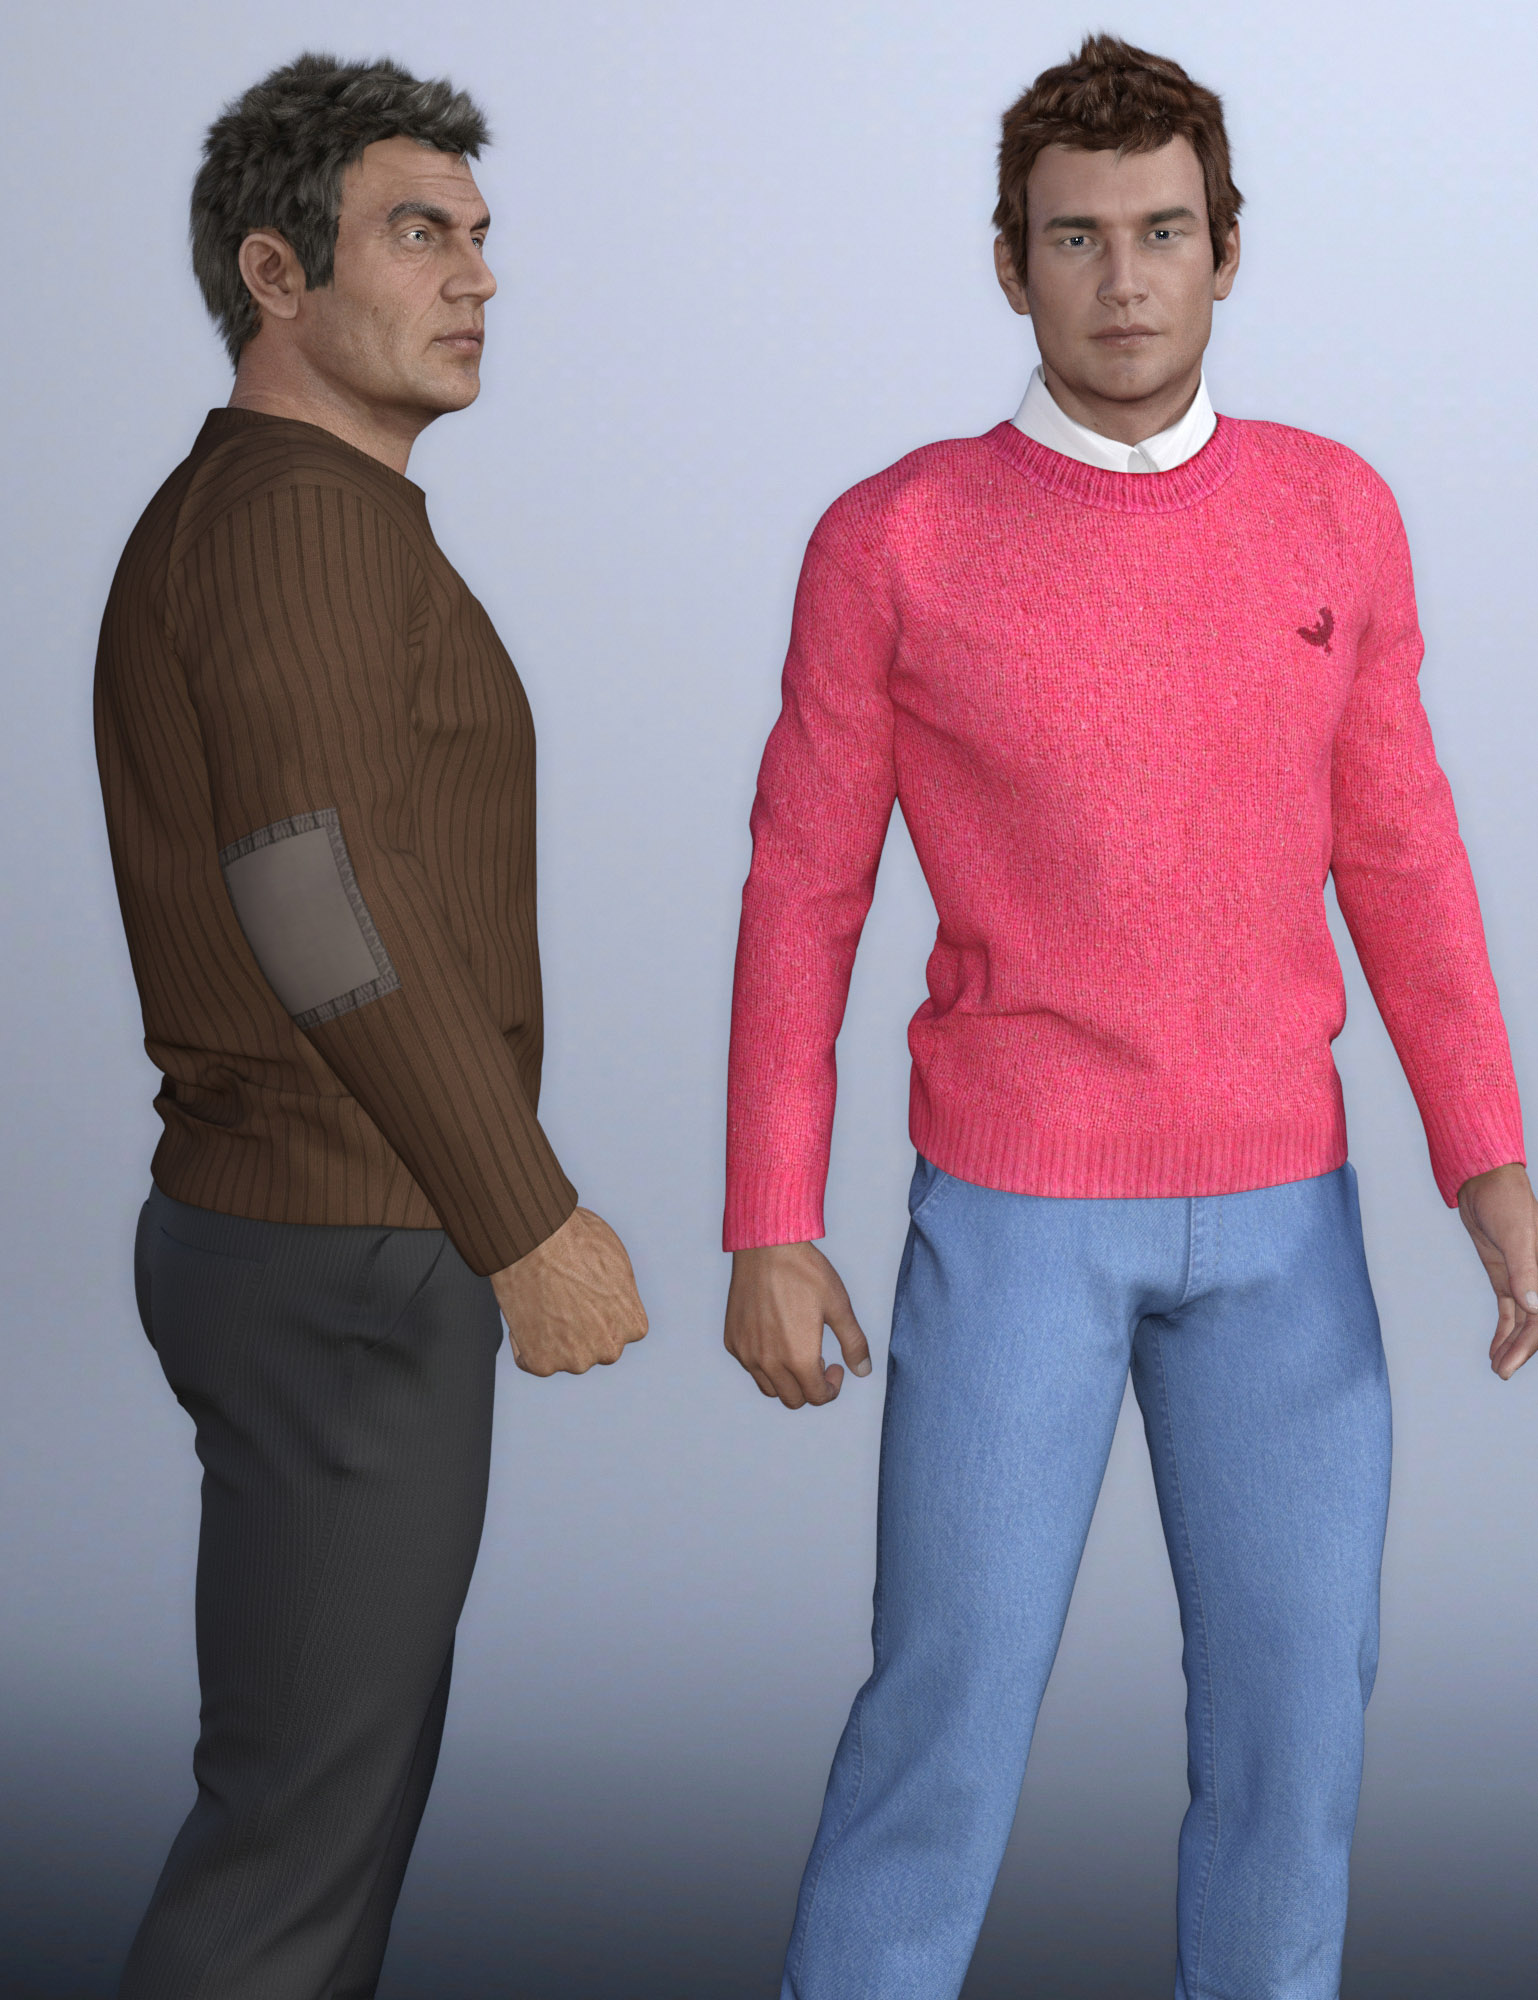 European Clothes for Genesis 3 Male(s) by: Oskarsson, 3D Models by Daz 3D